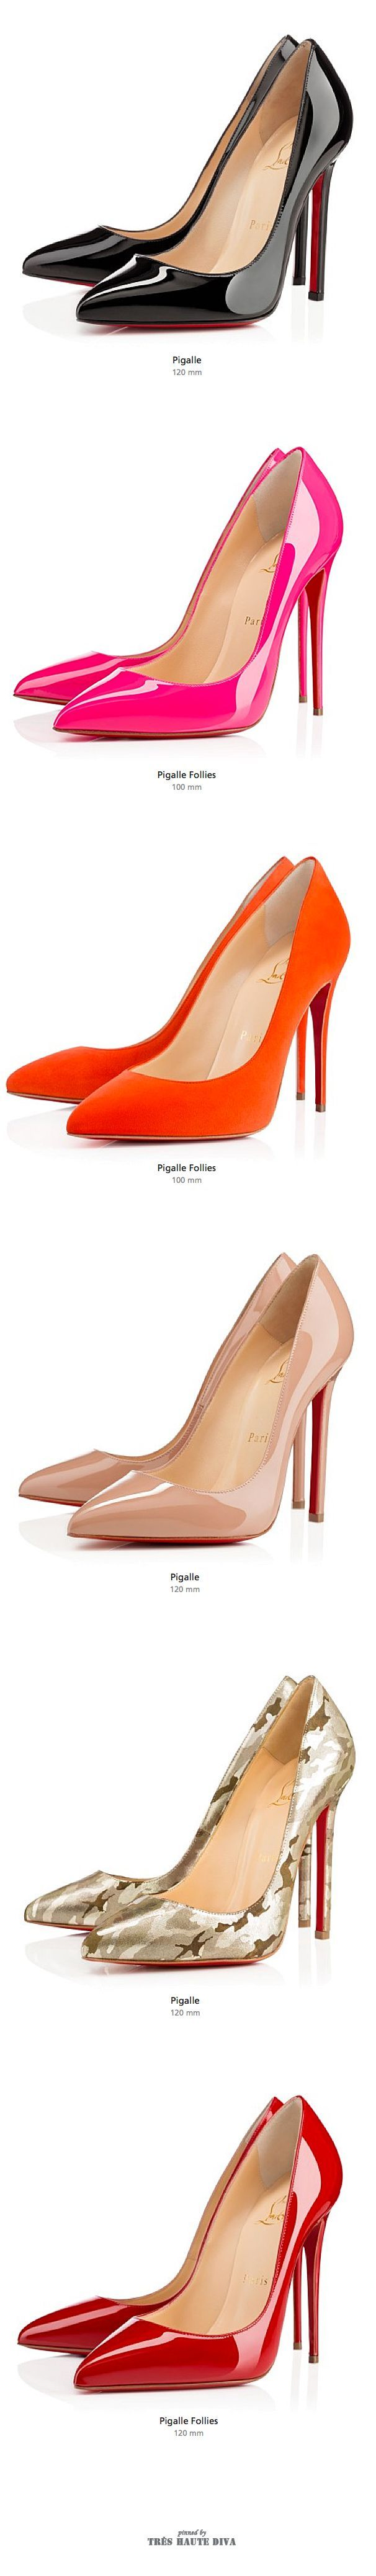 So Cheap!! Christian Louboutin Shoes #Christian #Louboutin #Shoes discount  site!